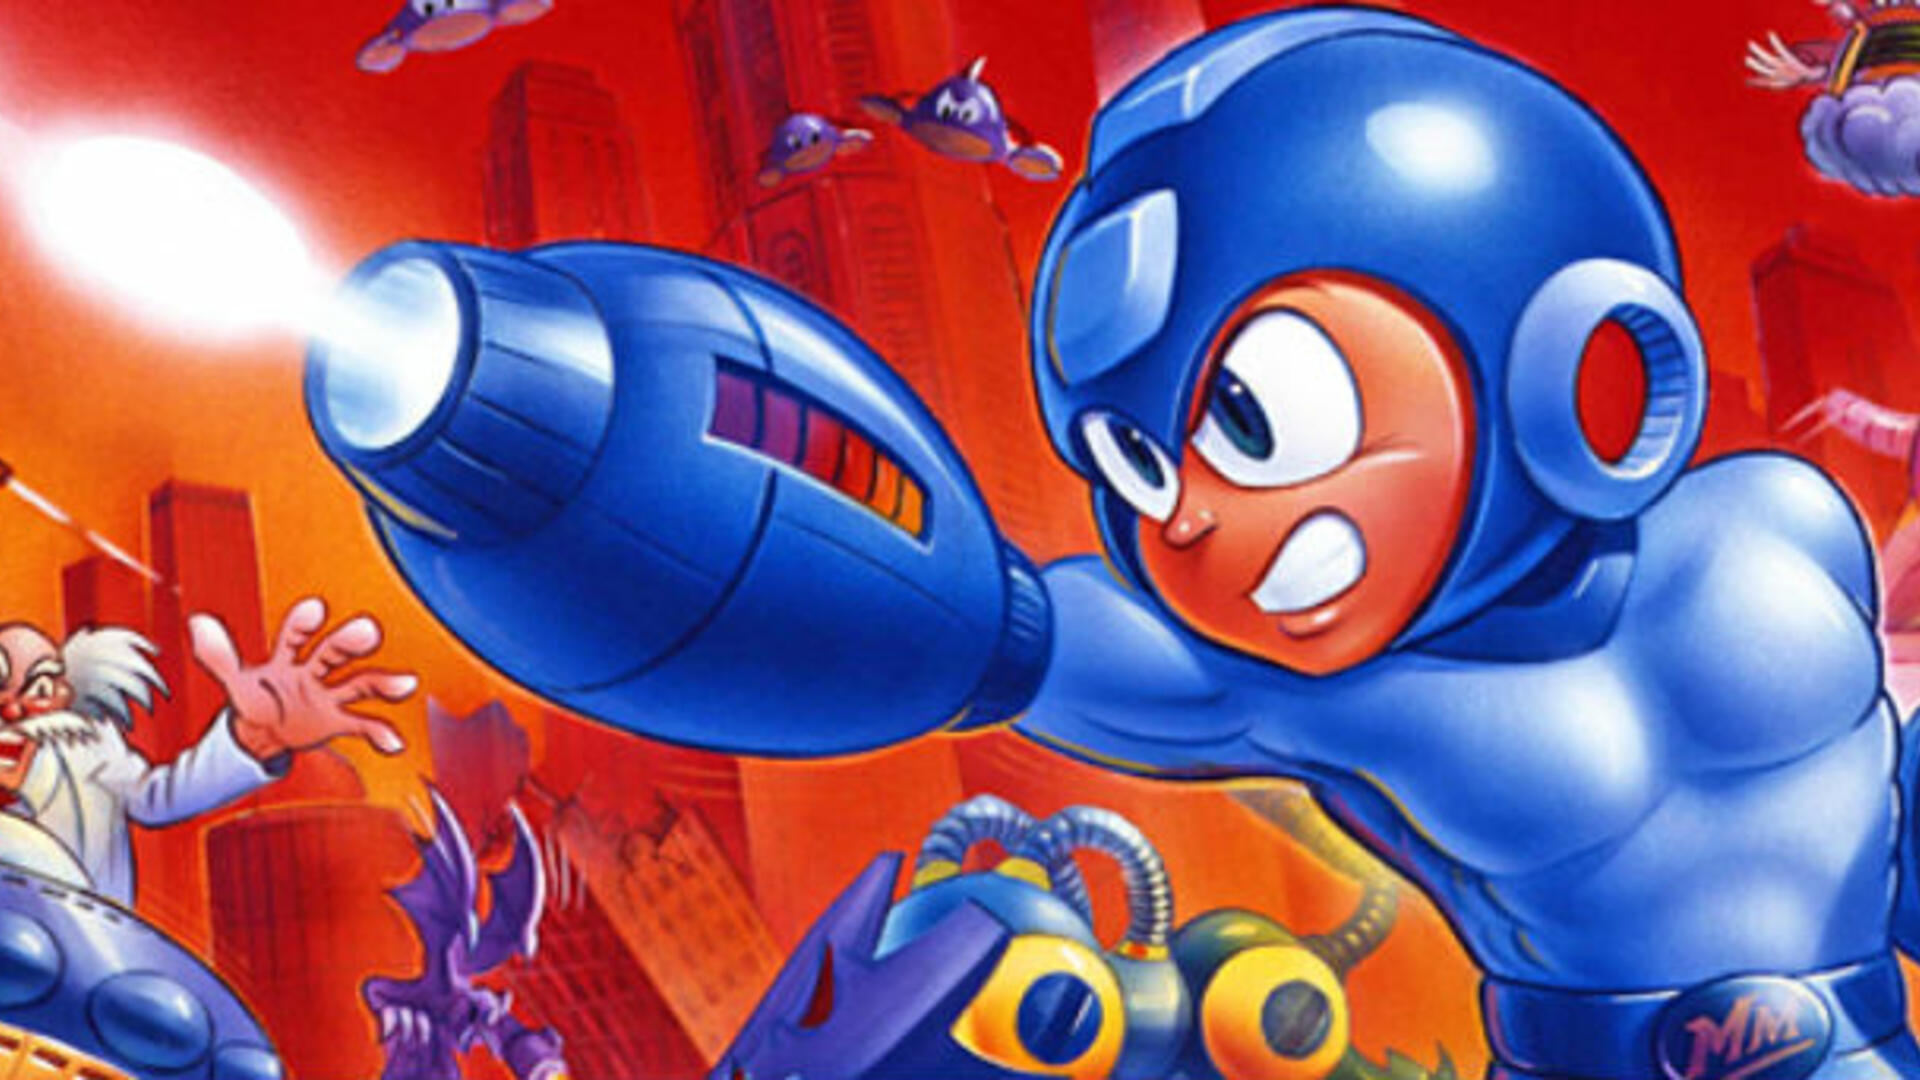 Interview Confirms Mega Man 7 was Developed in 3 Months